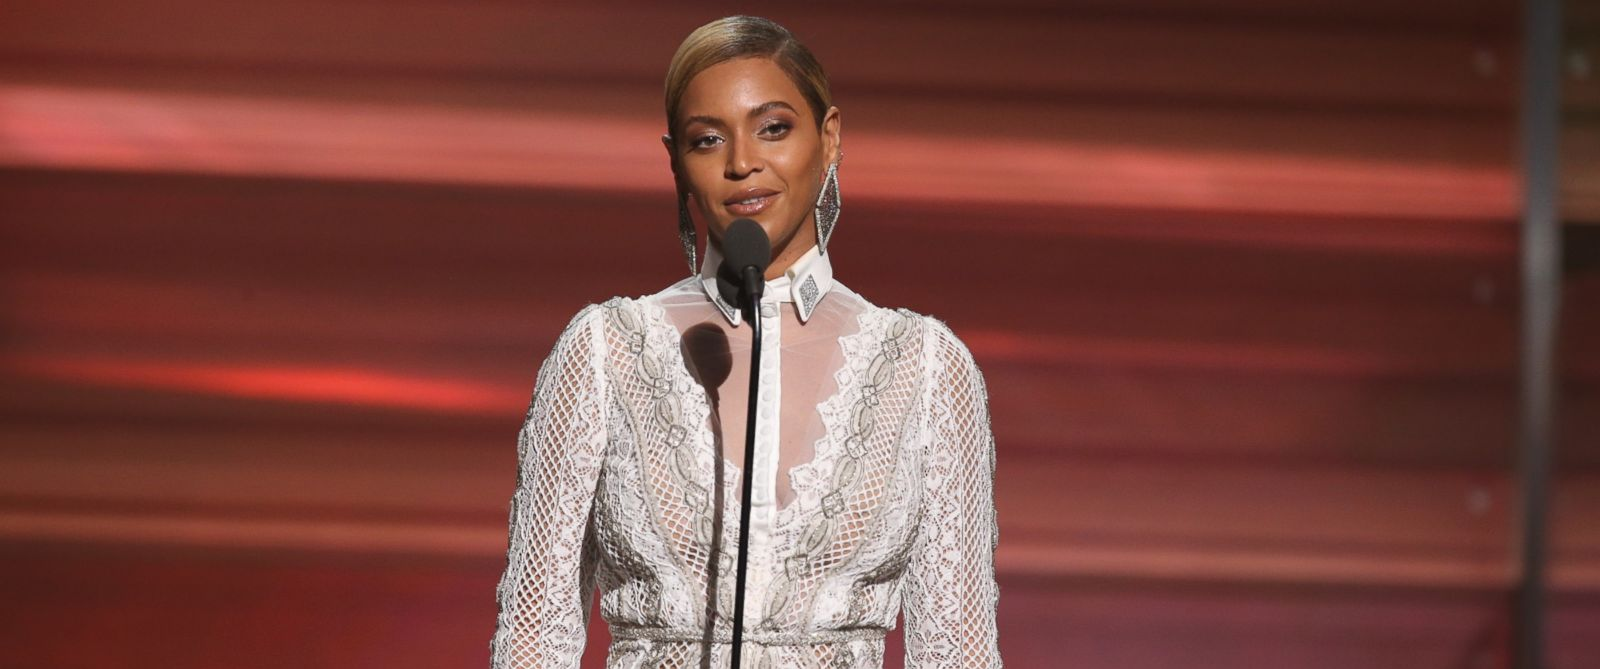 PHOTO: Beyonce onstage during The 58th GRAMMY Awards at Staples Center, Feb. 15, 2016, in Los Angeles.